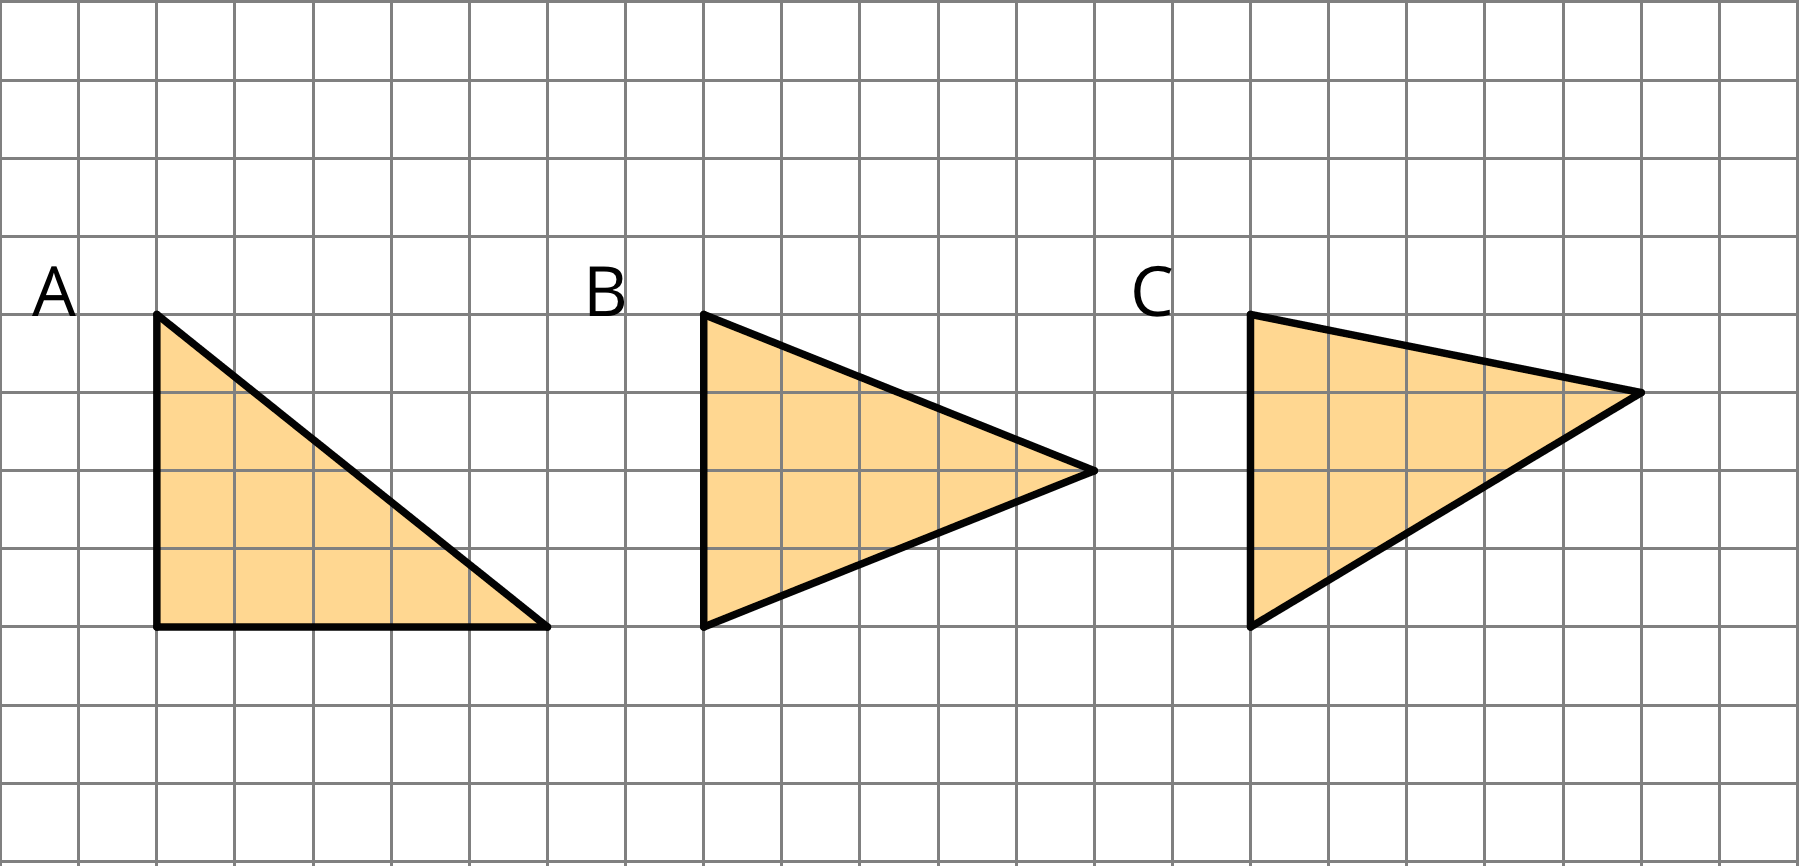 Three triangles labeled A, B, and C. Triangle A is a right triangle with a base of 5 and a height of 4. Triangle B has a base of 4 and a height of 5. Triangle C has a base of 4 and a height of 5.